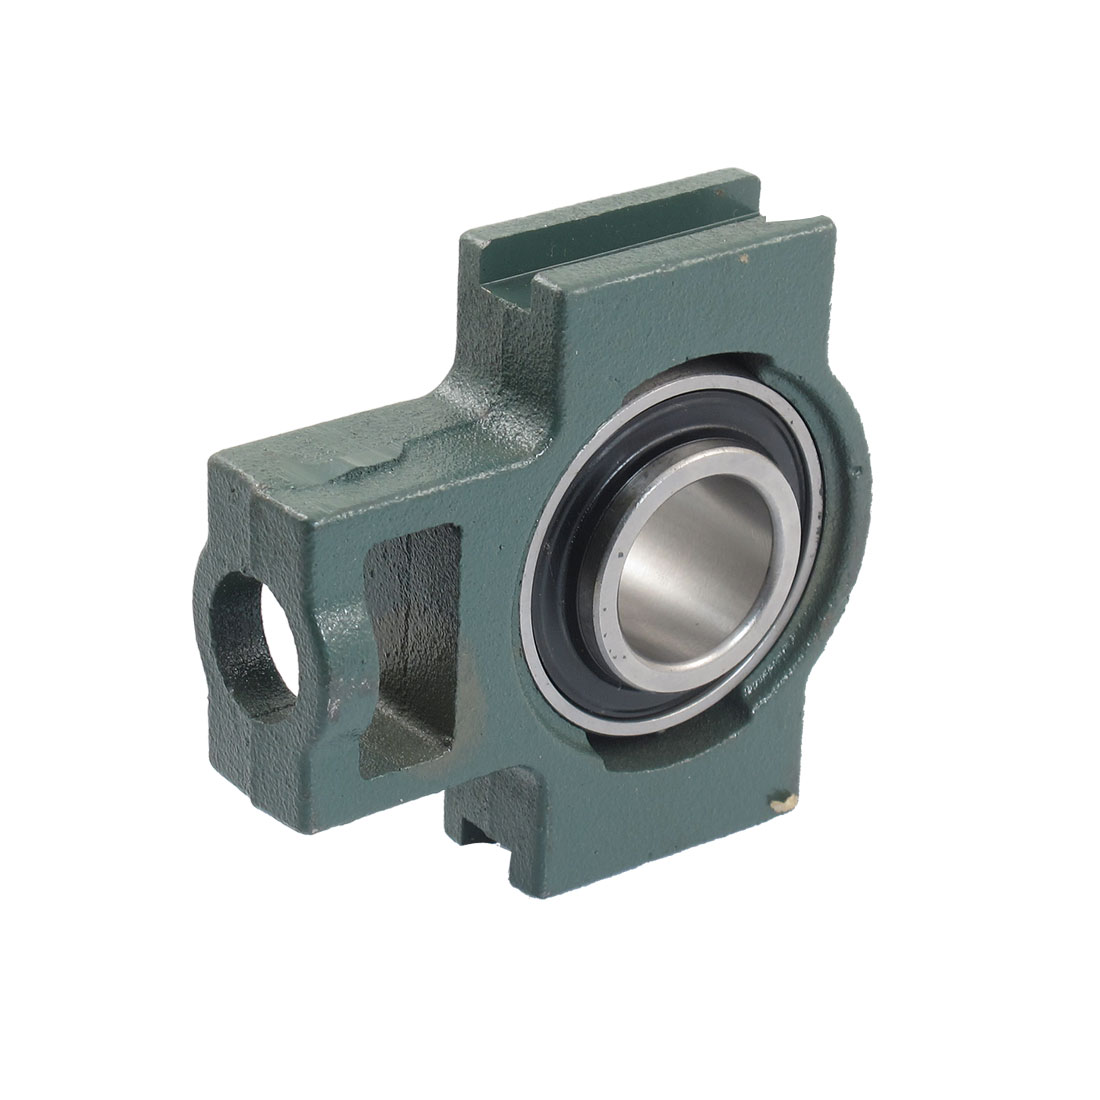 UCT206 30mm Mounted Block Cast Housing Self-aligning Pillow Bearing